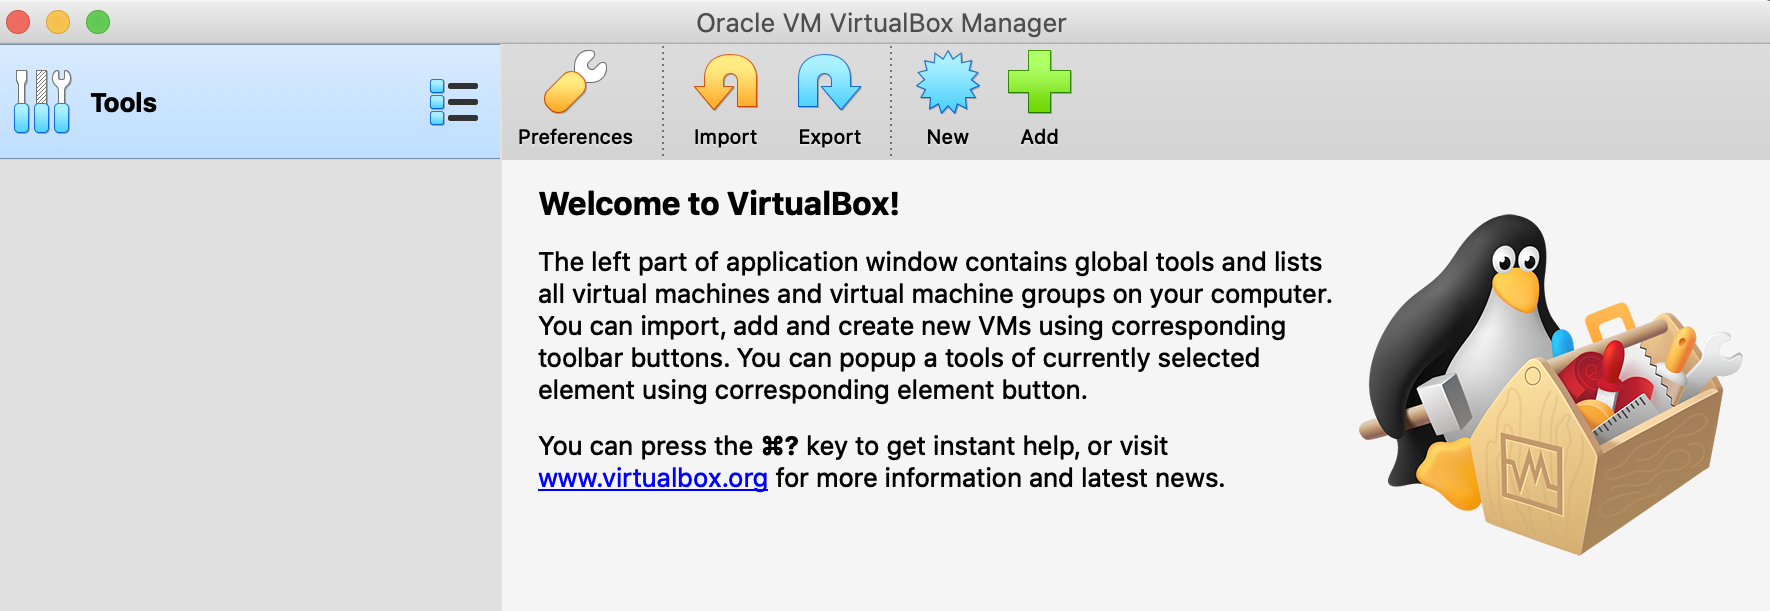 Welcome-to-VirtualBox